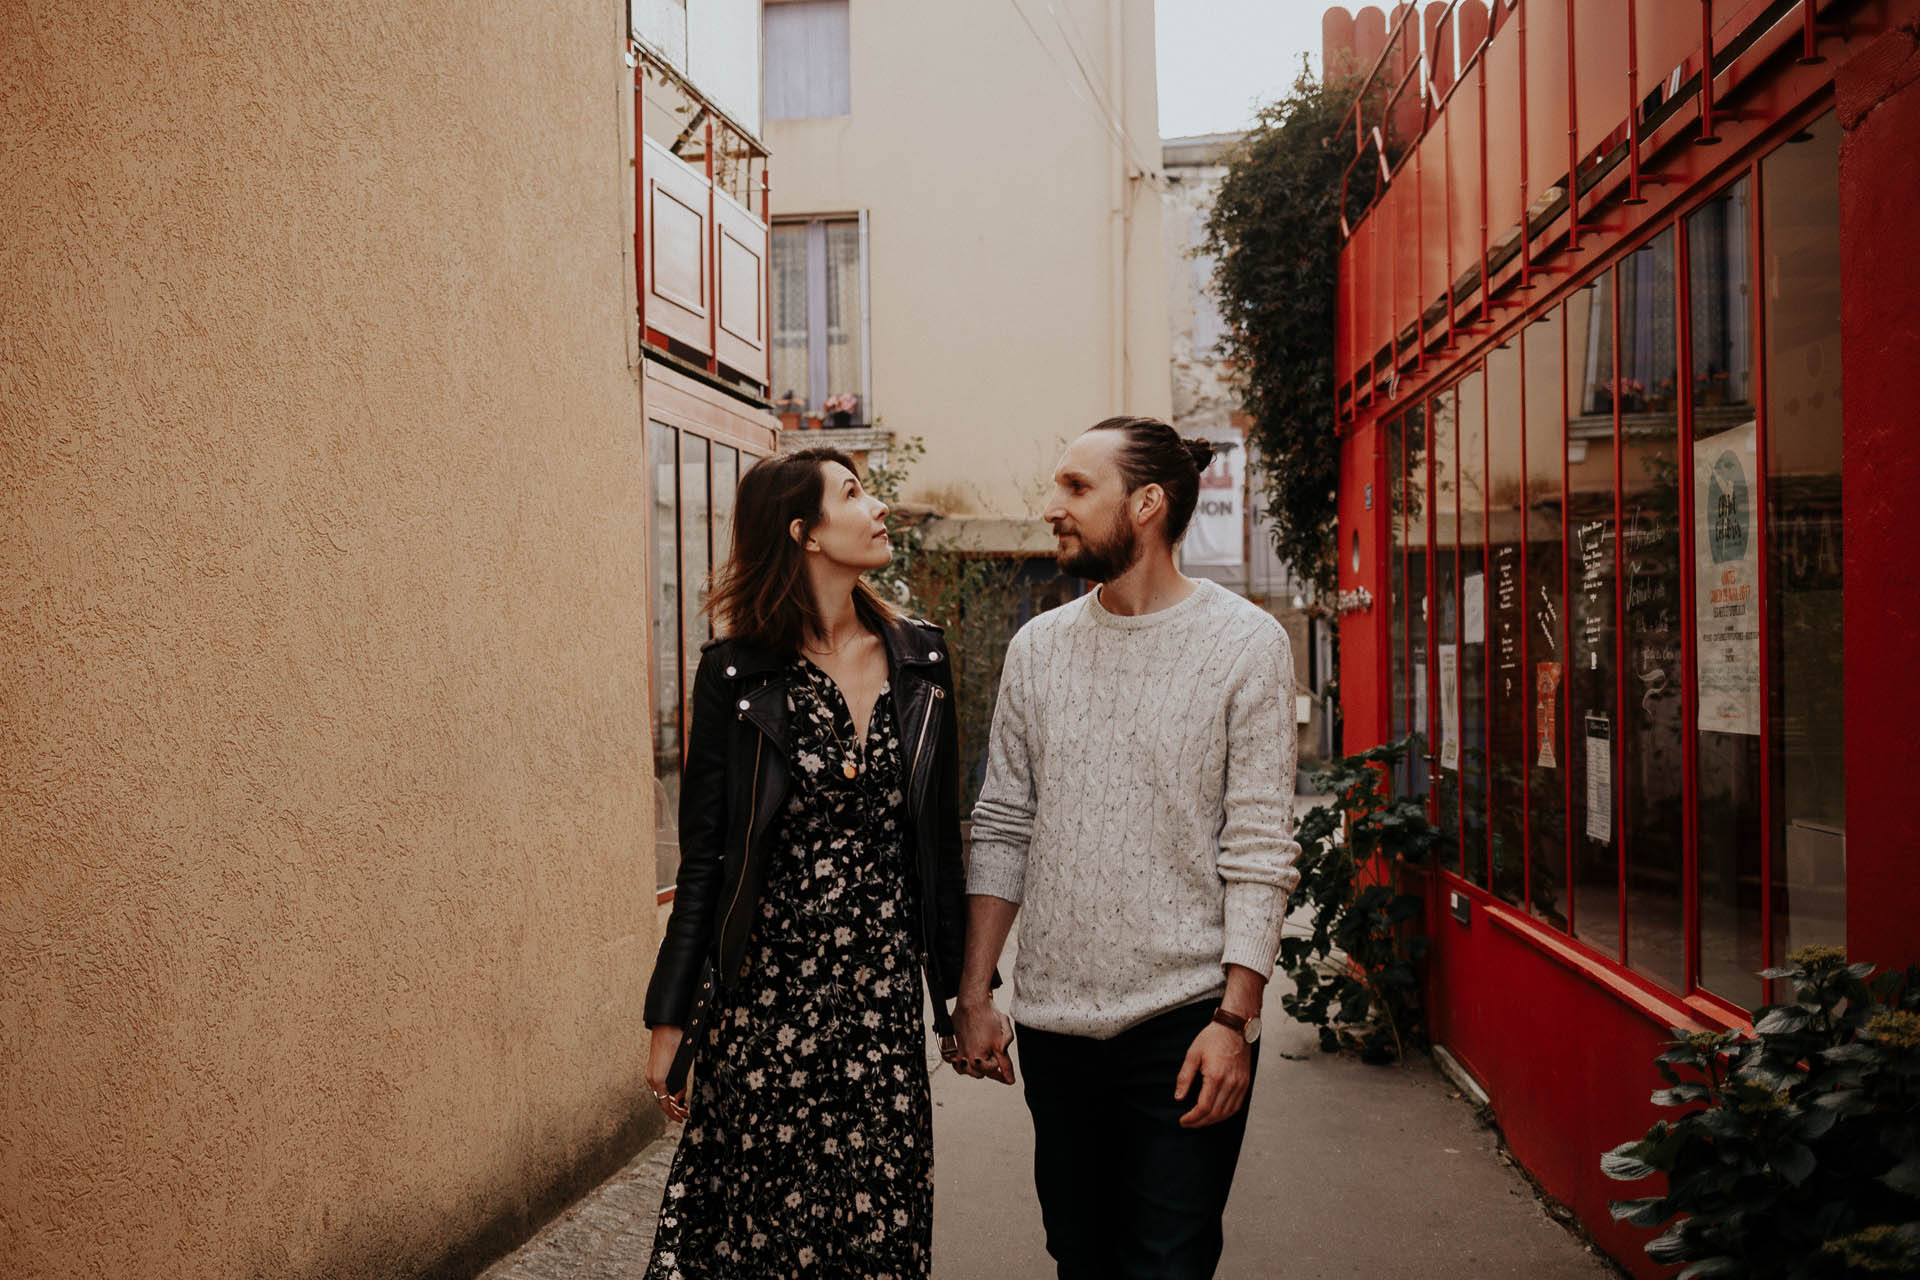 engagement_session_trentemoult_flavie_nelly_photographe_nantes-11